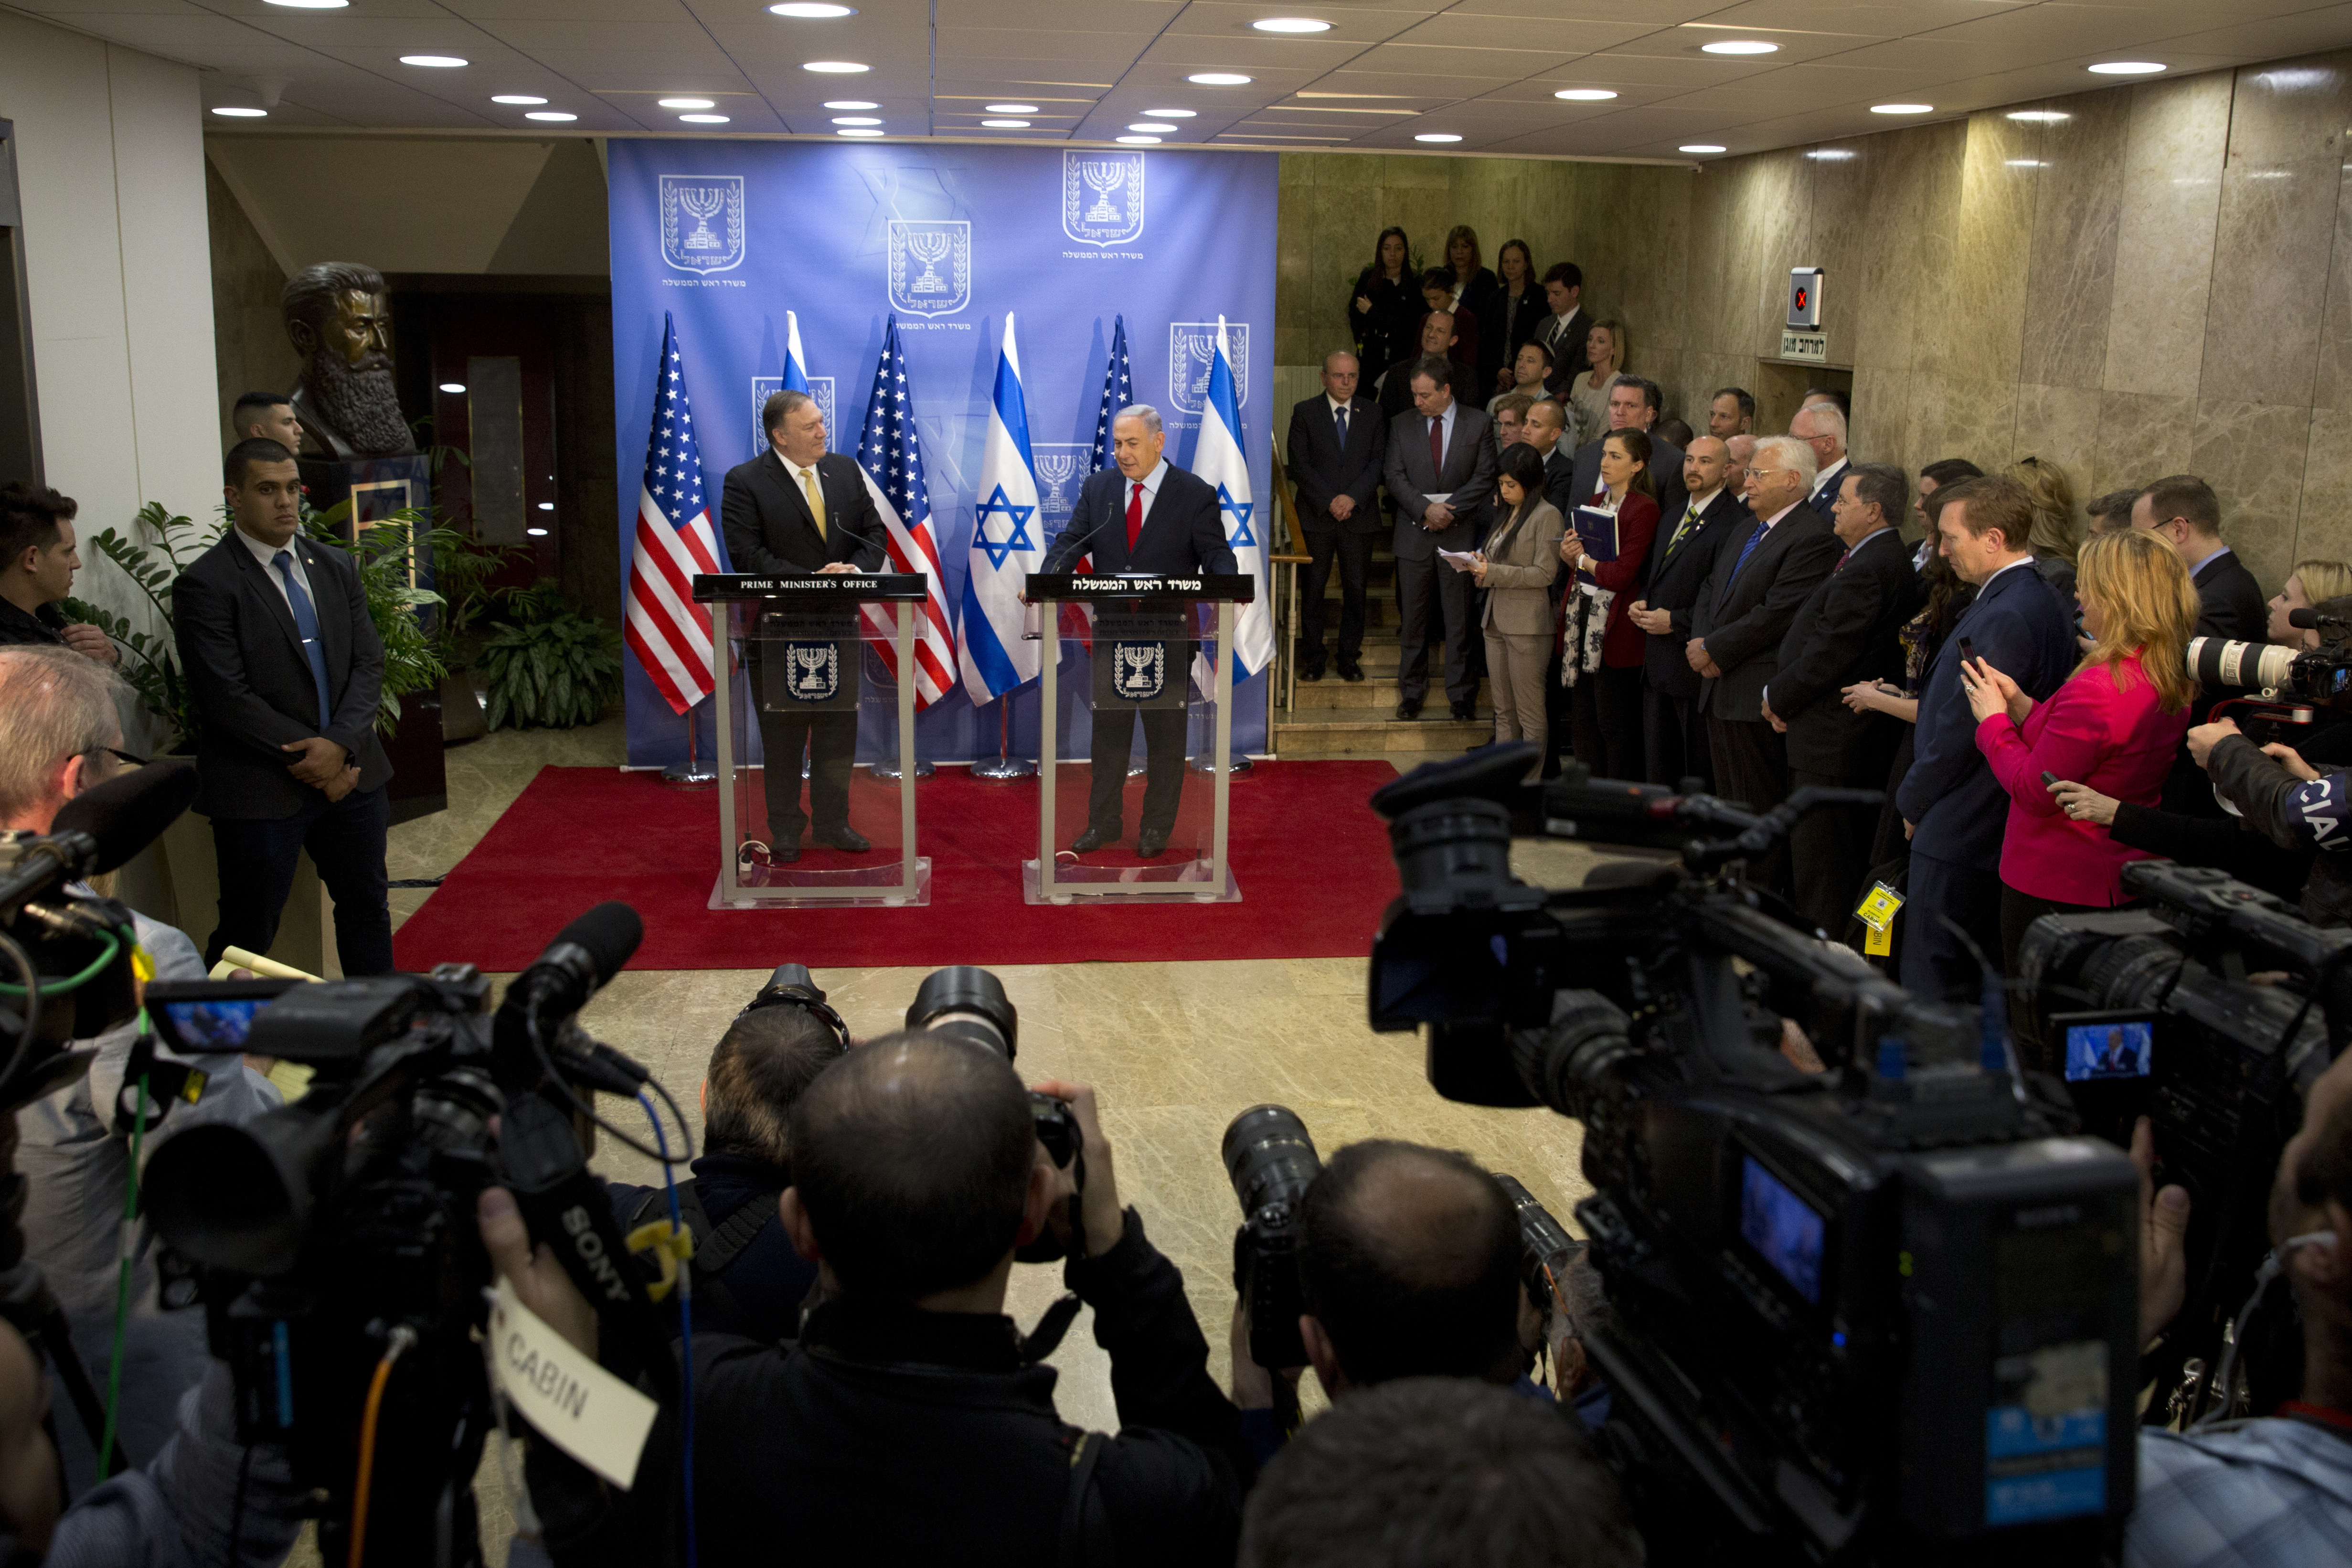 Israeli Prime Minister Benjamin Netanyahu, right, and U.S. Secretary of State Mike Pompeo deliver joint statements at the Prime Minister's office in Jerusalem, March 20, 2019.